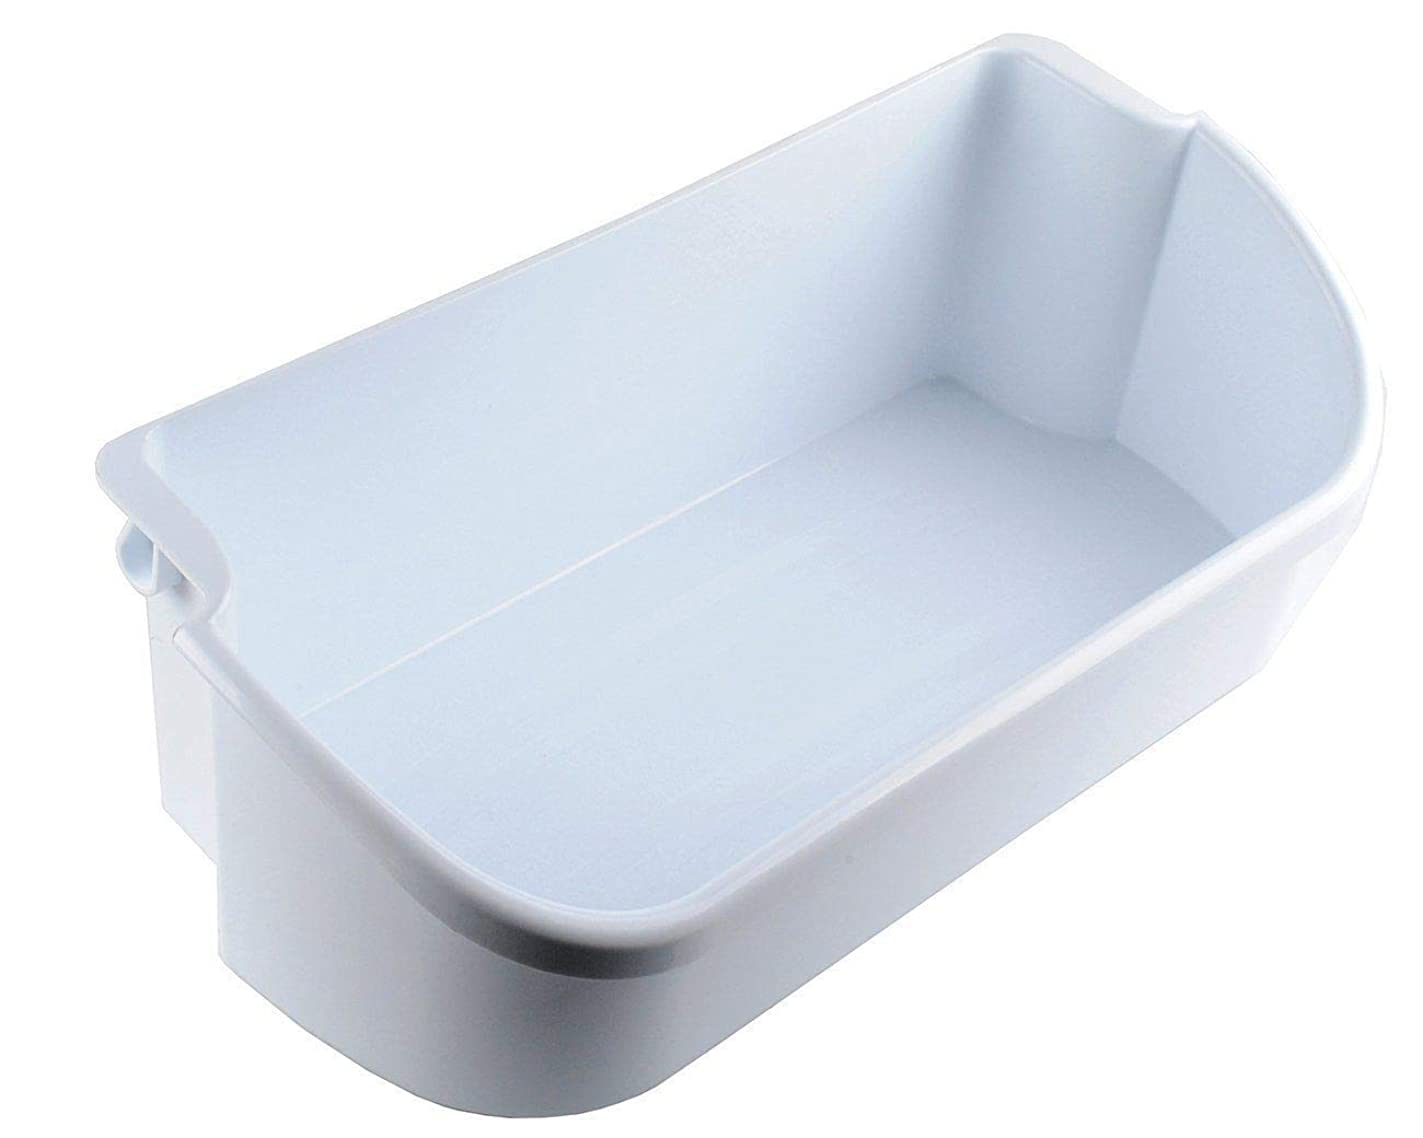 240356401 Door Bin – White Replacement for Frigidaire, Electrolux